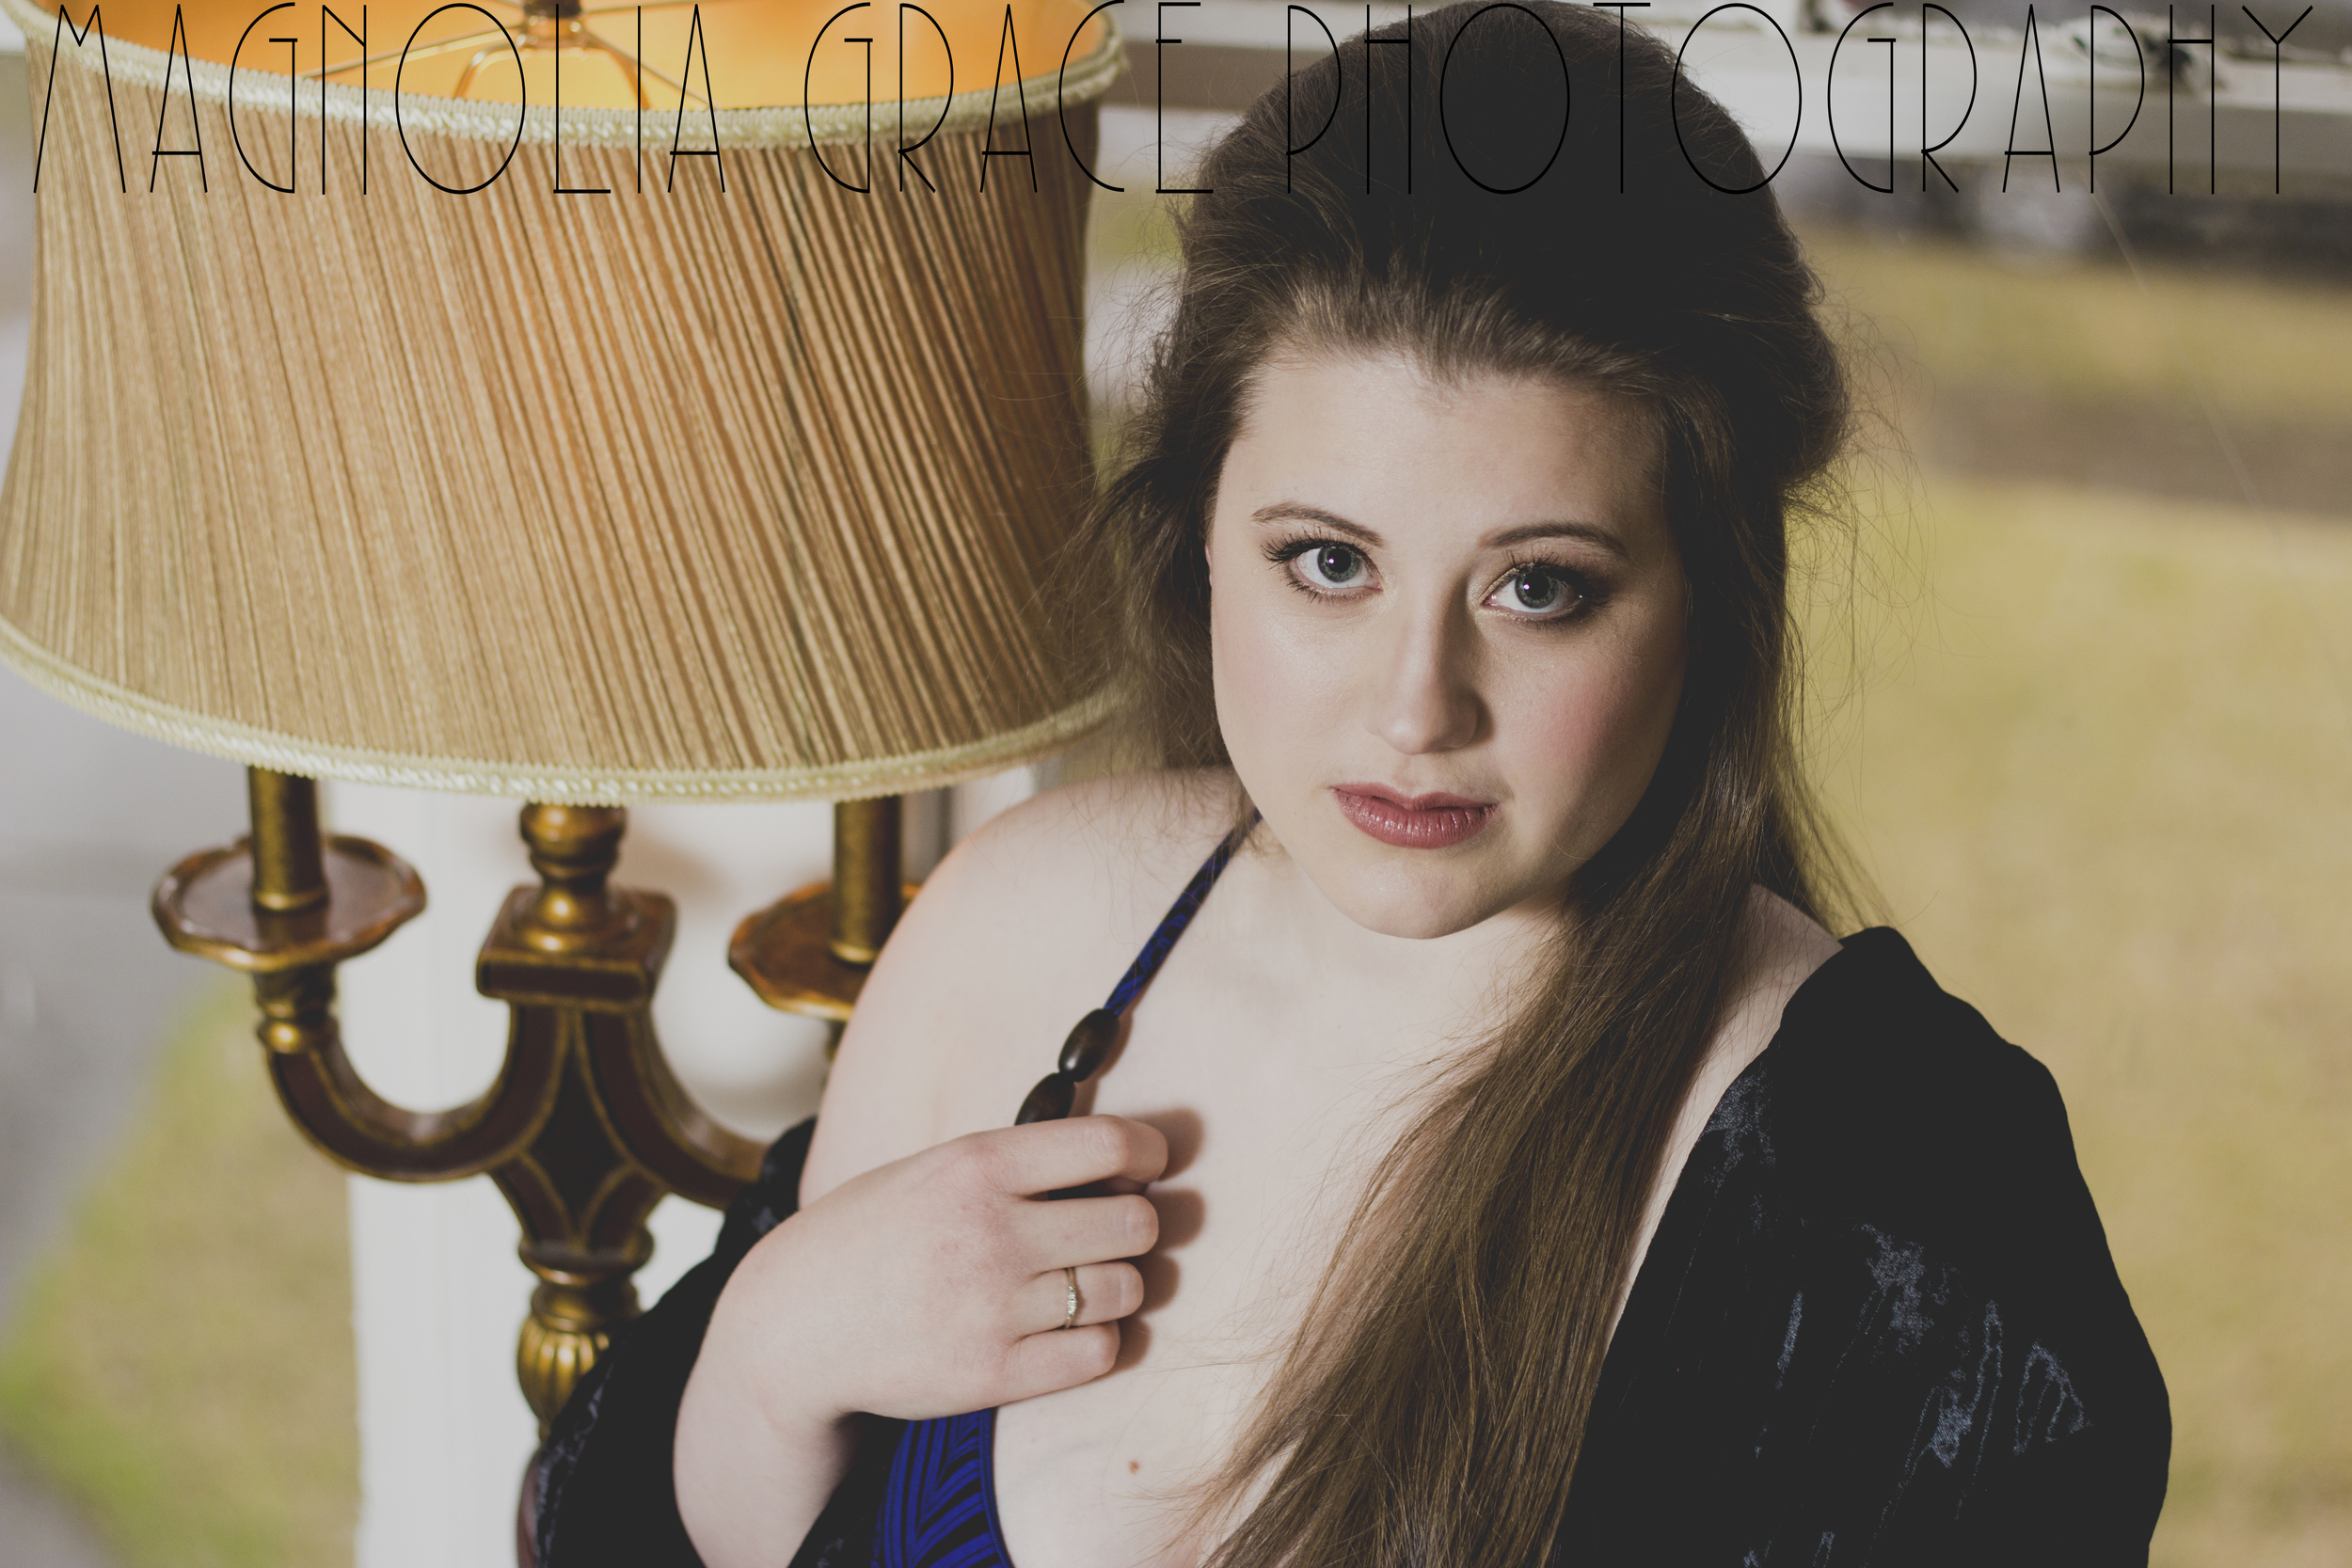 Confidence is Sexiest. Pinky Promise!!! | Magnolia Grace Photography Shreveport Women's Photographer Boudoir and Beauty